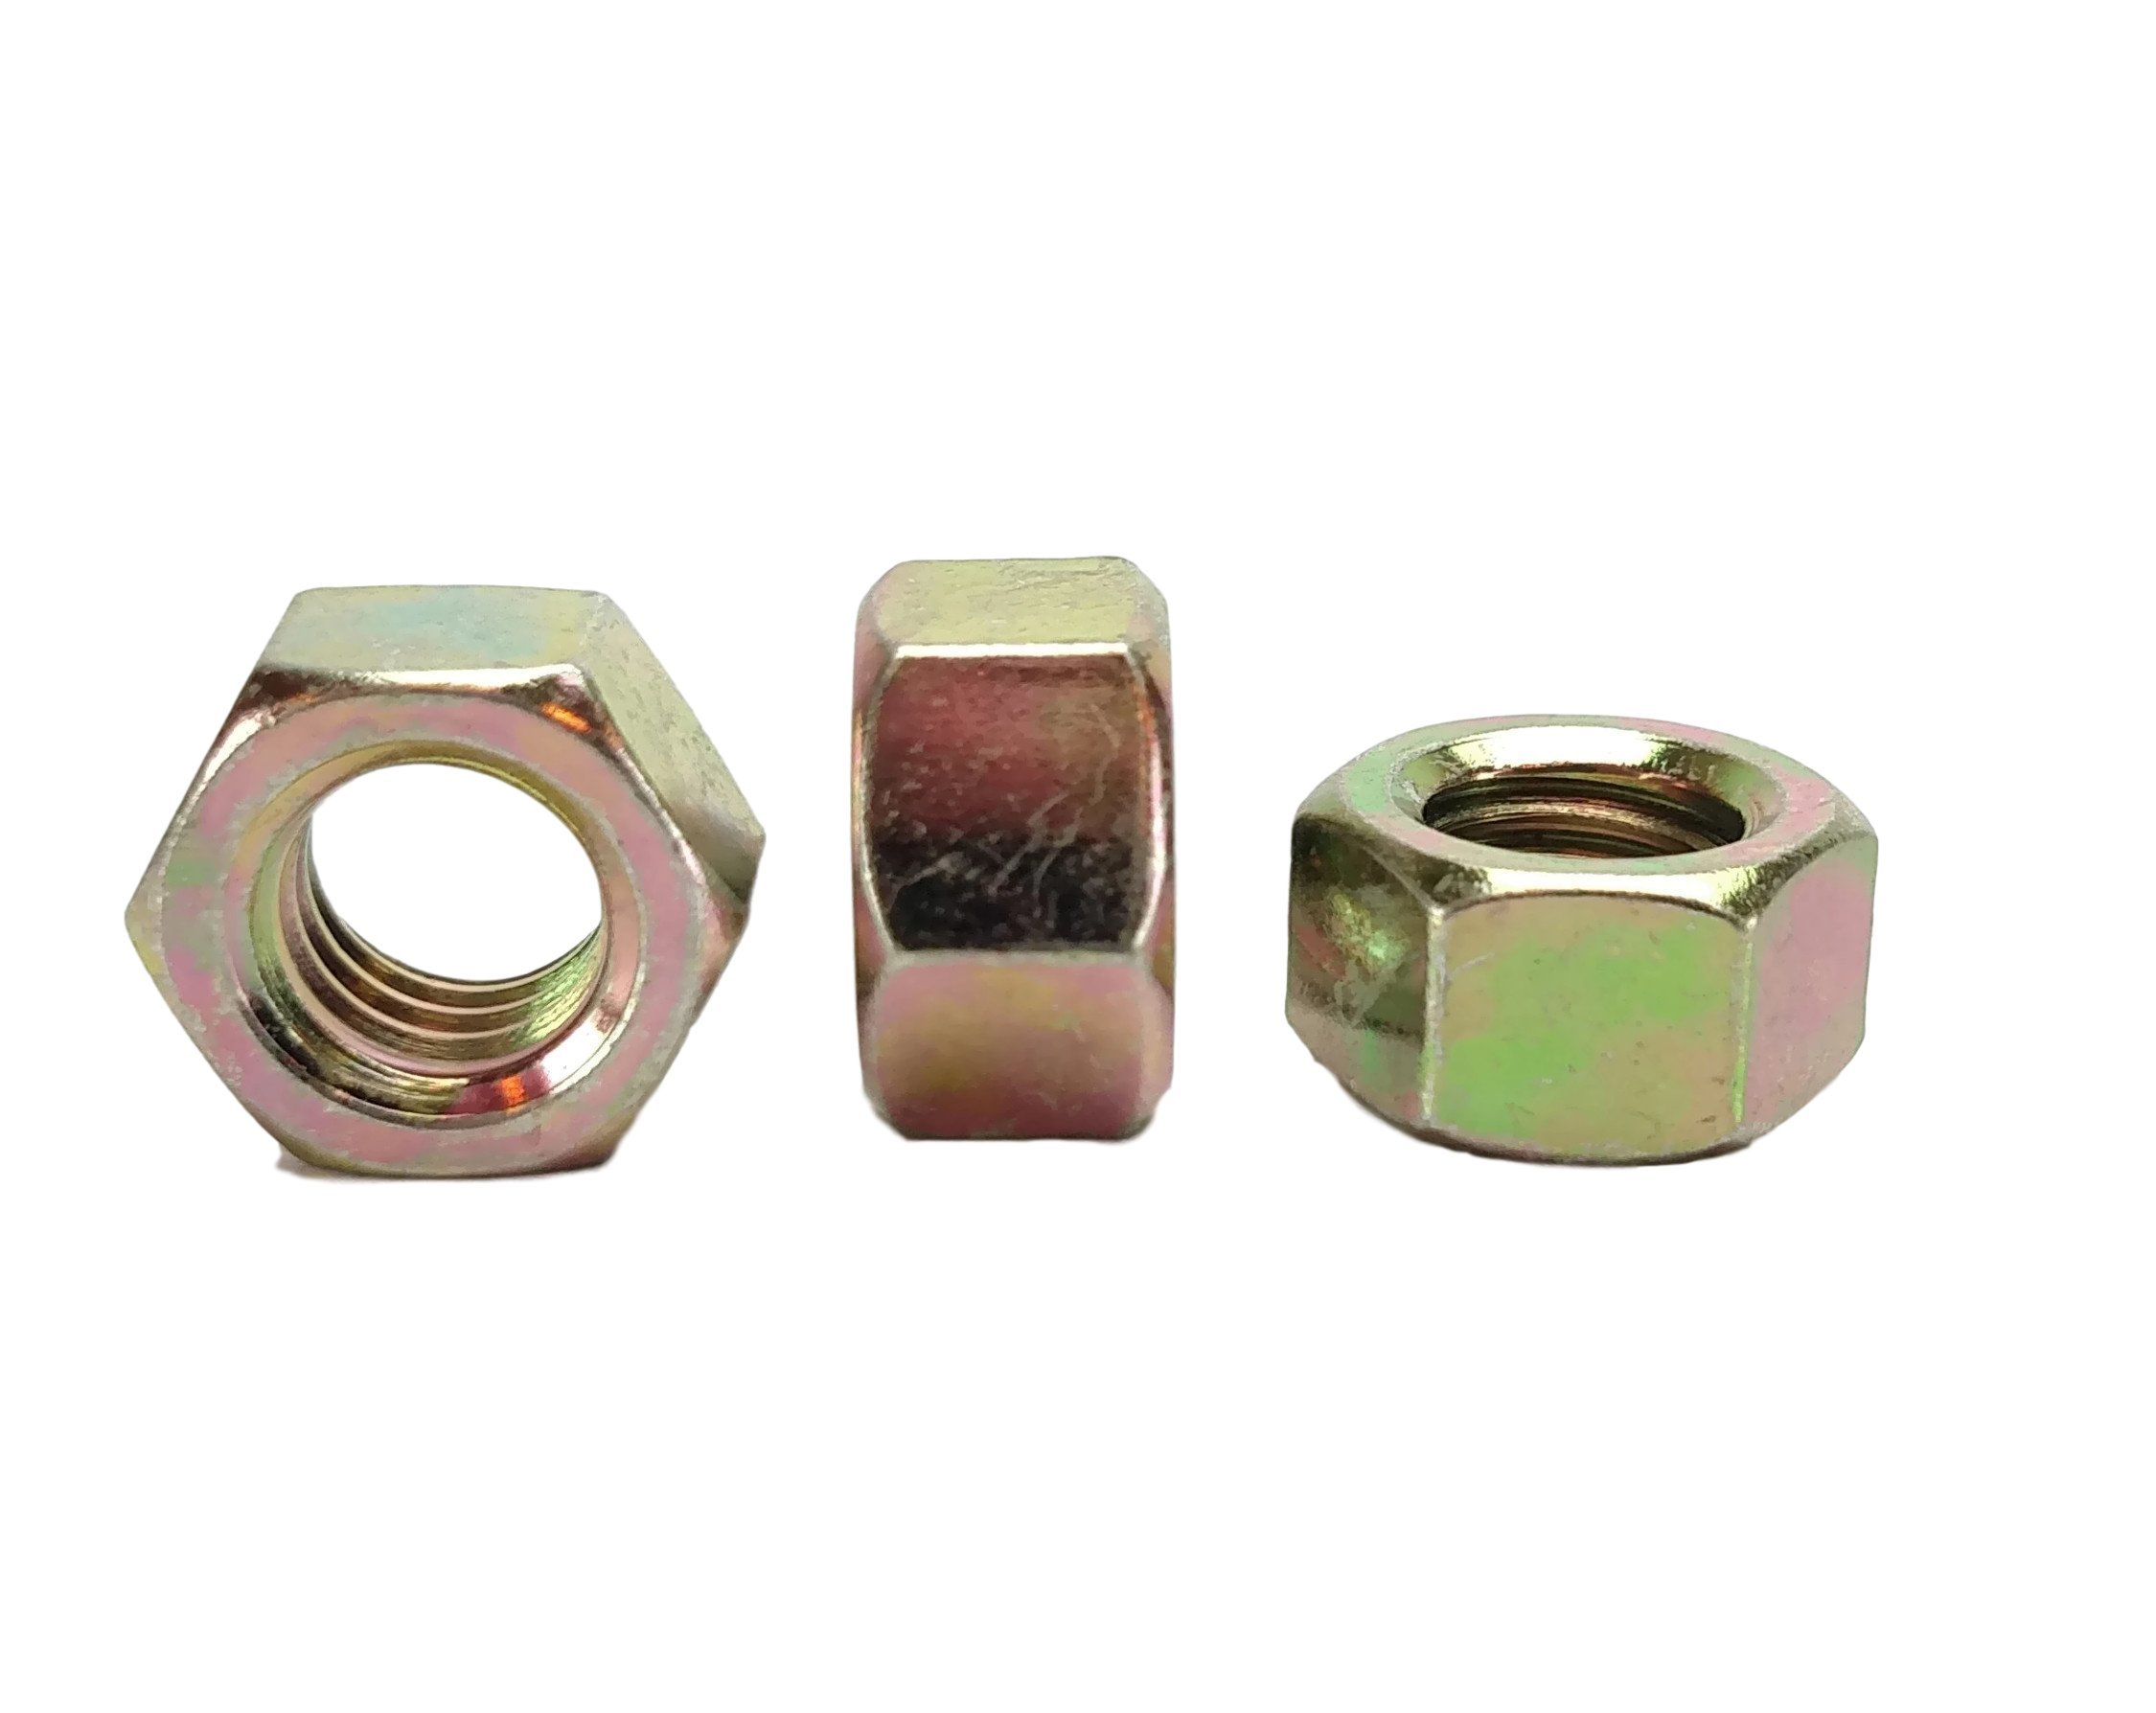 3/8-16 USS Hex Head Nuts, Grade 8(More Selections in Listing) Hardened Nut (3/8-16 Hex Nuts (50pcs))